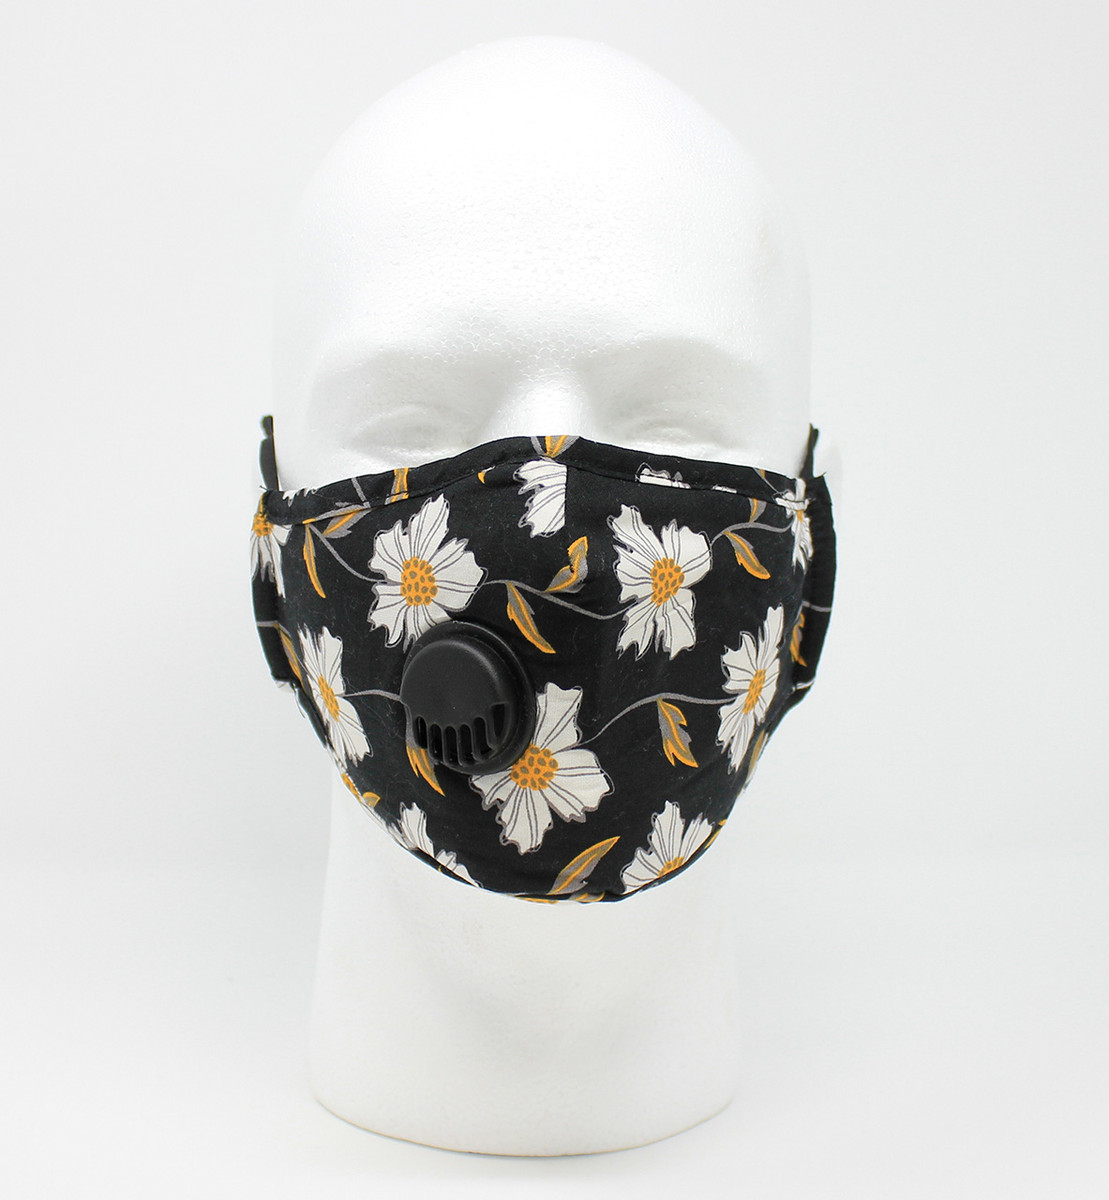 Vented Graphic Fashion Masks - Black/Gold Floral